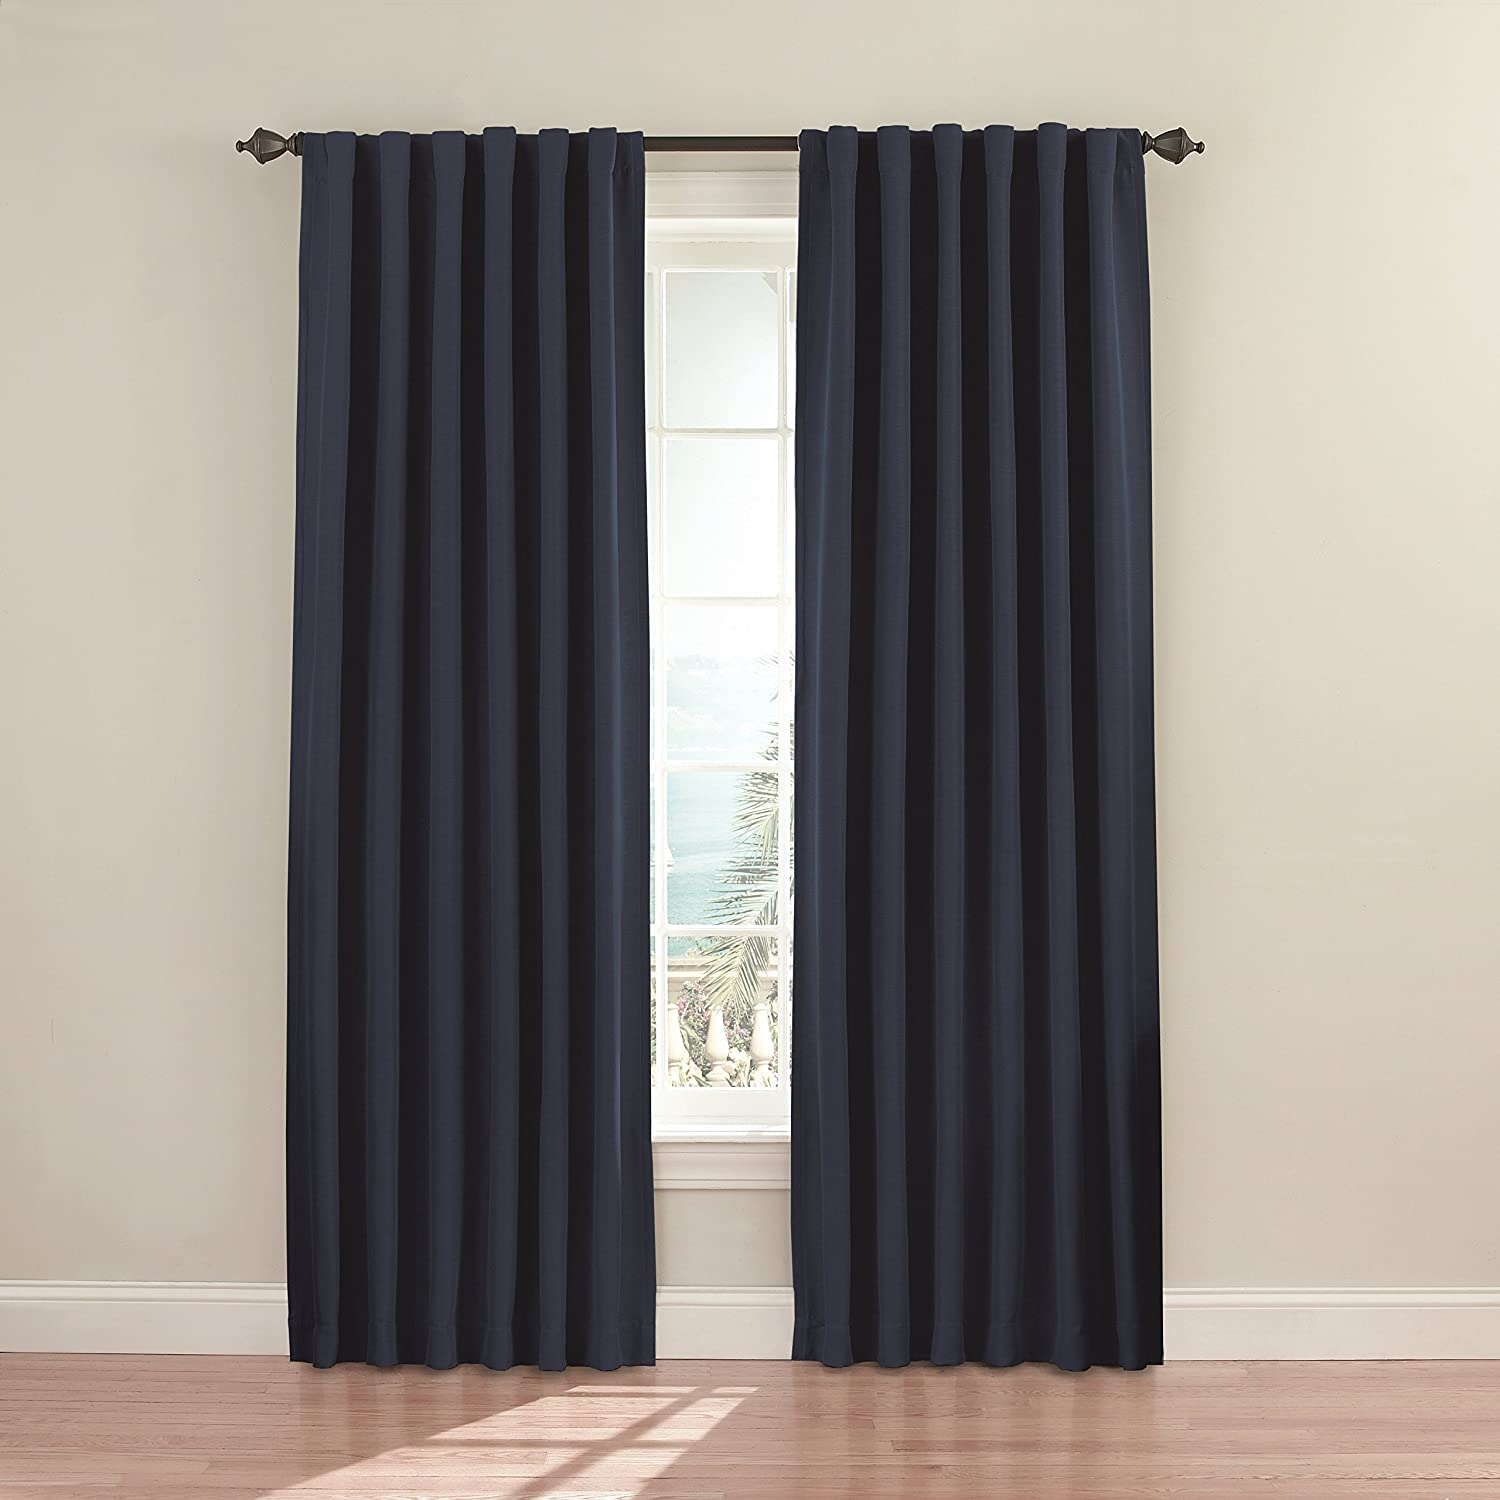 wide size long inch match curtain bedroom grommet grommets of length extra window pole drapes do curtains full literarywondrous to sizes need cheap rod